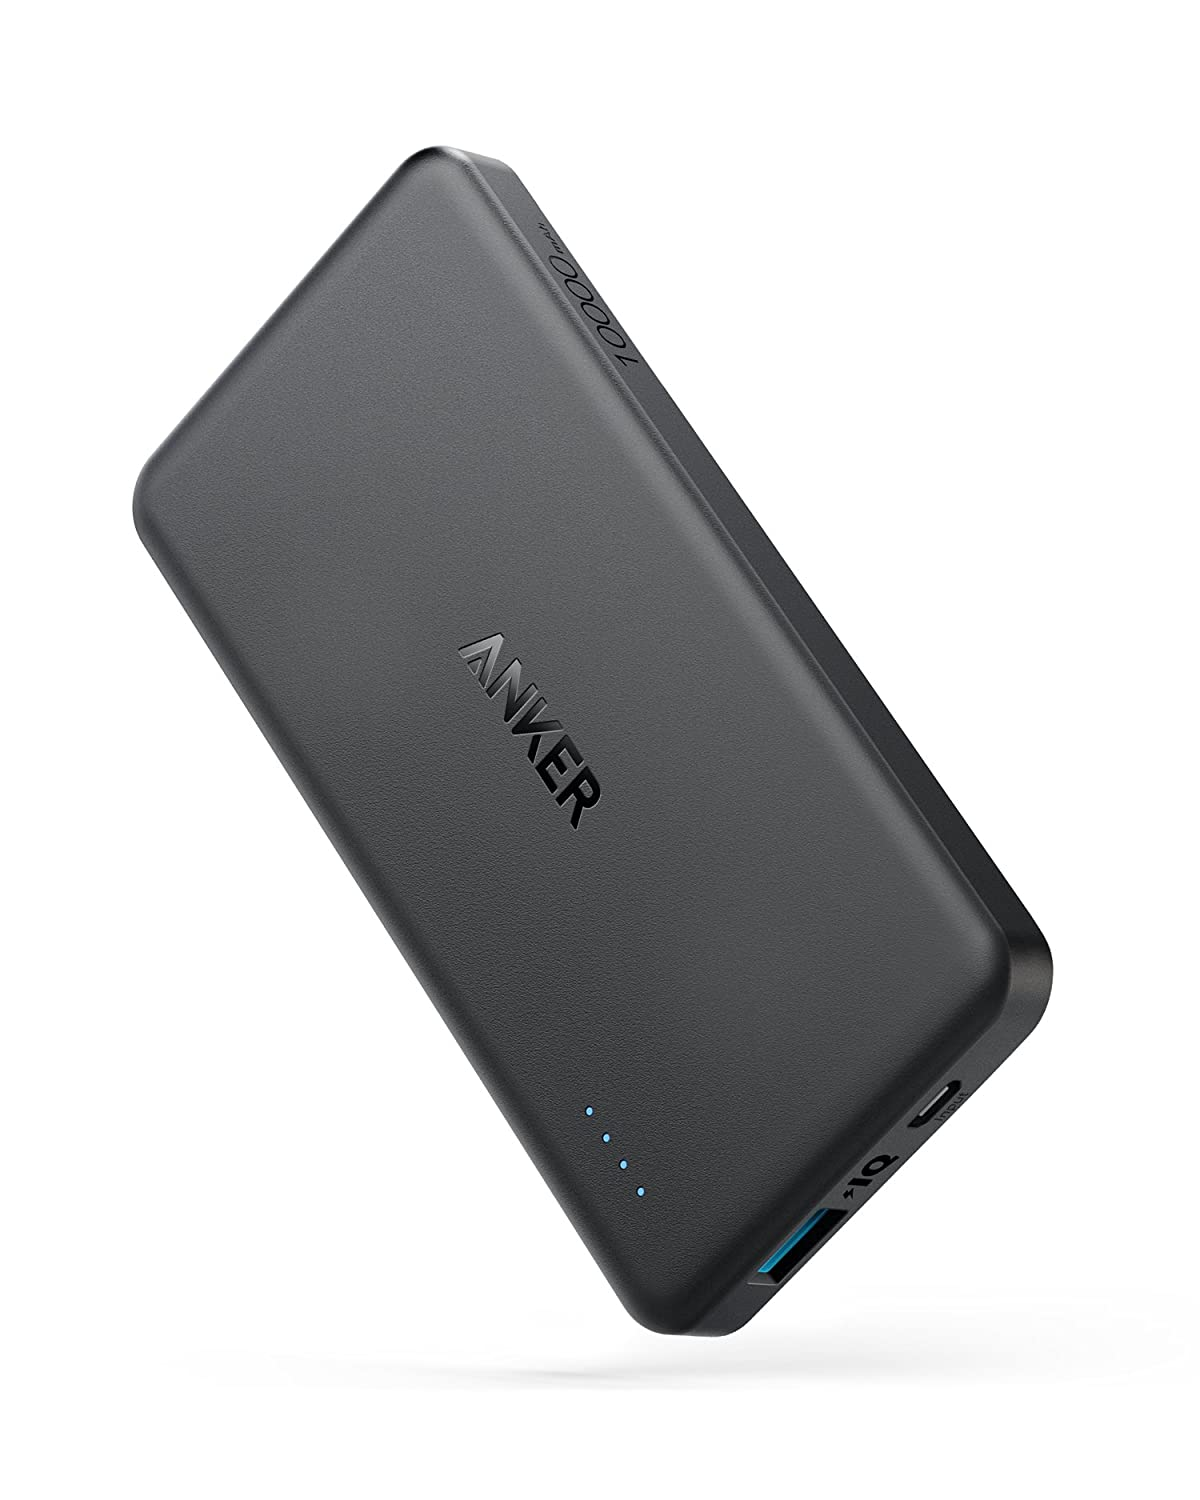 Anker PowerCore II Slim 10000 Ultra Slim Power Bank for iPhone, Samsung Galaxy and More AK-A1261011